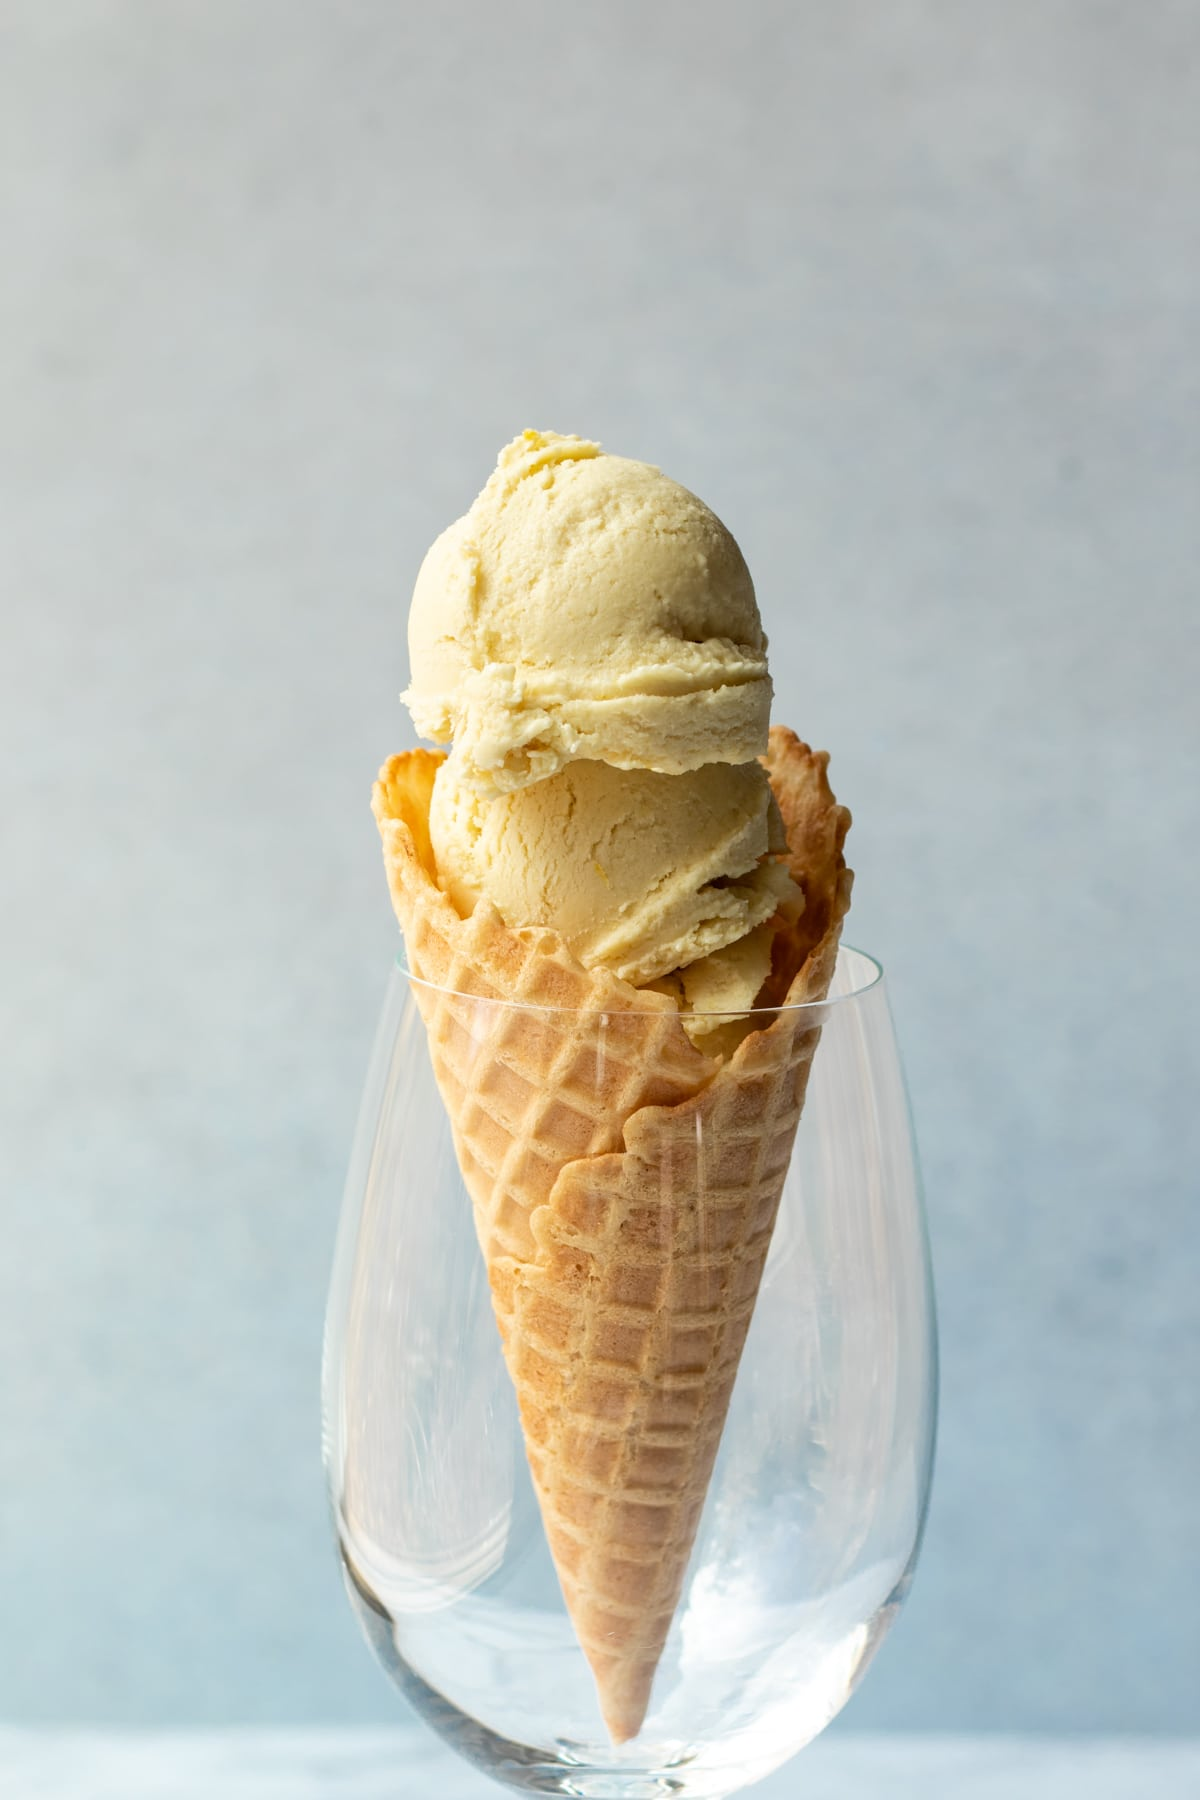 an ice cream cone held in a large wine glass